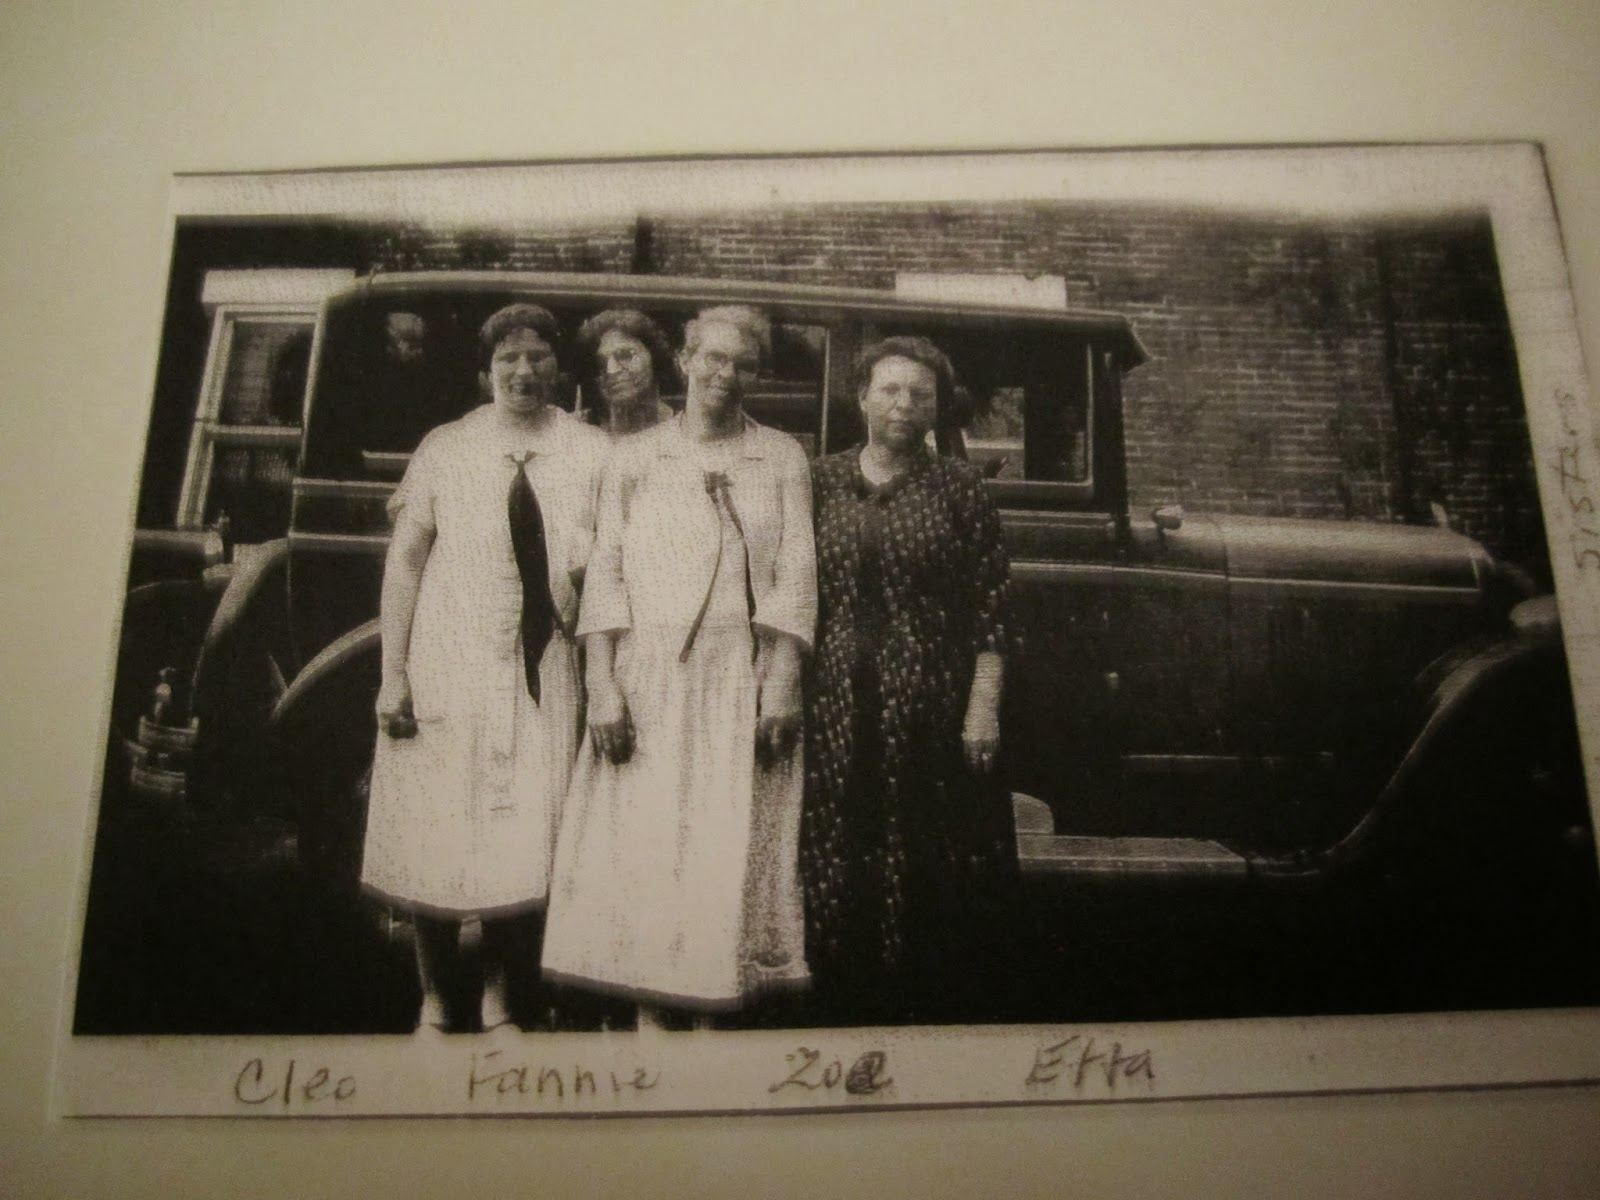 Climbing My Family Tree: The Hartman Girls - Cleo Duffield, Fannie Hart-Erwin, Zoe Rader & Etta Archer